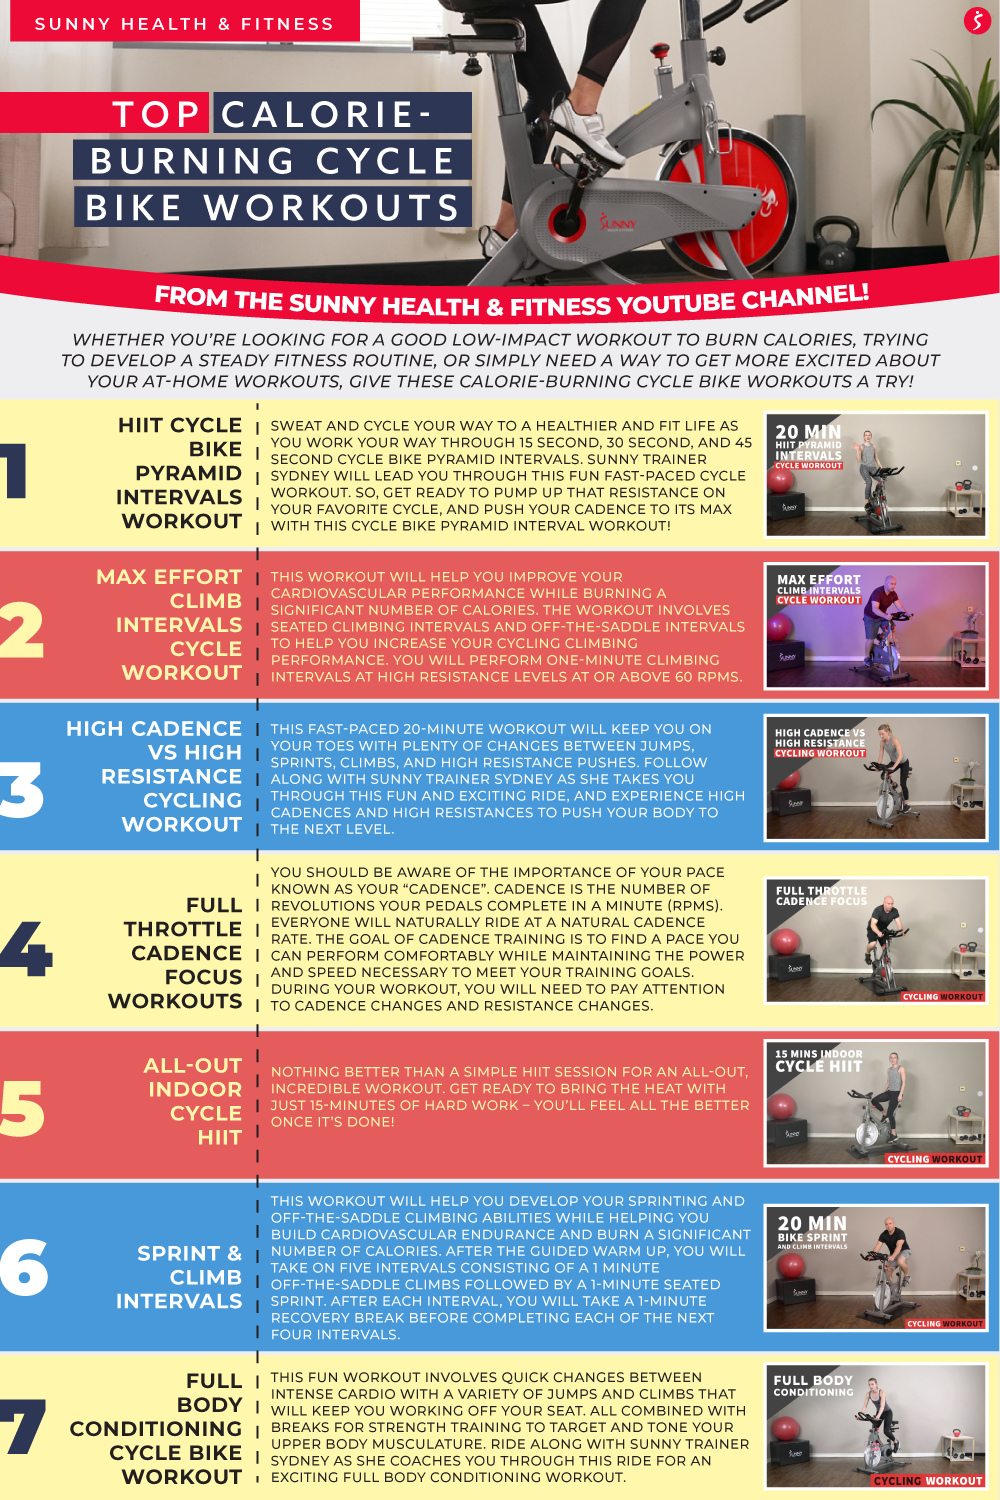 Top Calorie-Burning Cycle Bike Workouts Infographic